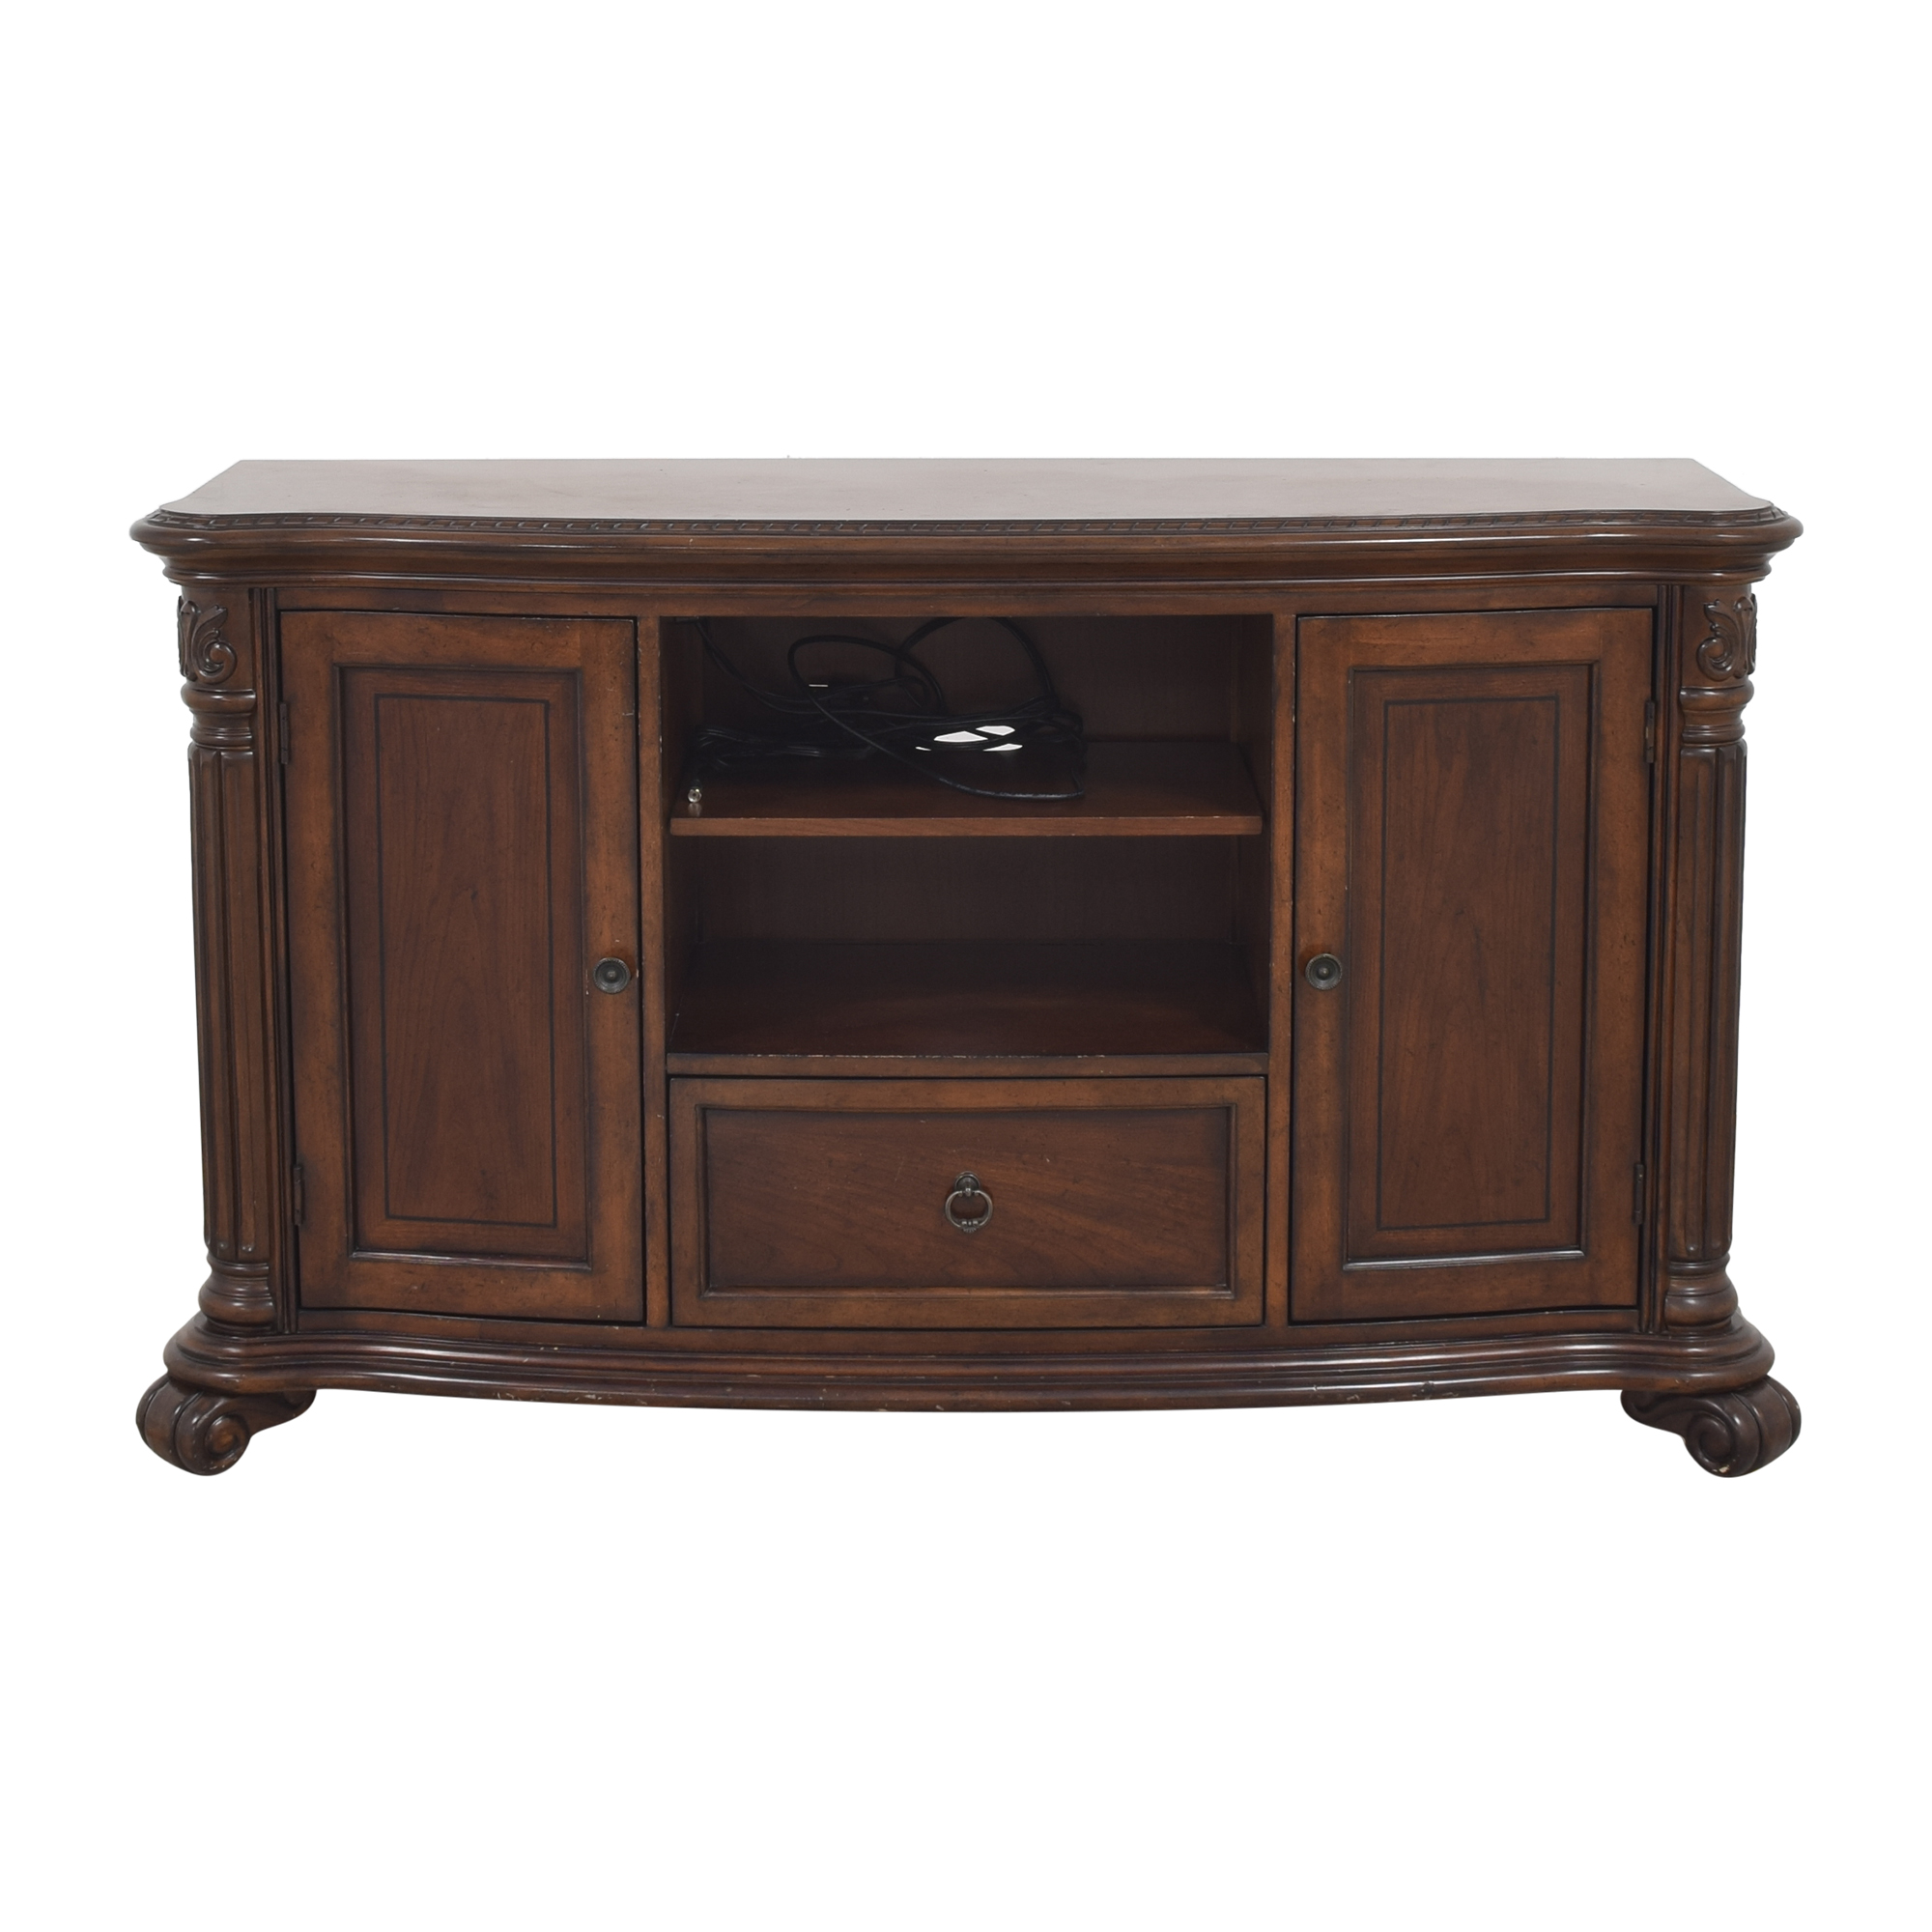 buy Raymour & Flanigan Raymour & Flanigan Media Console online